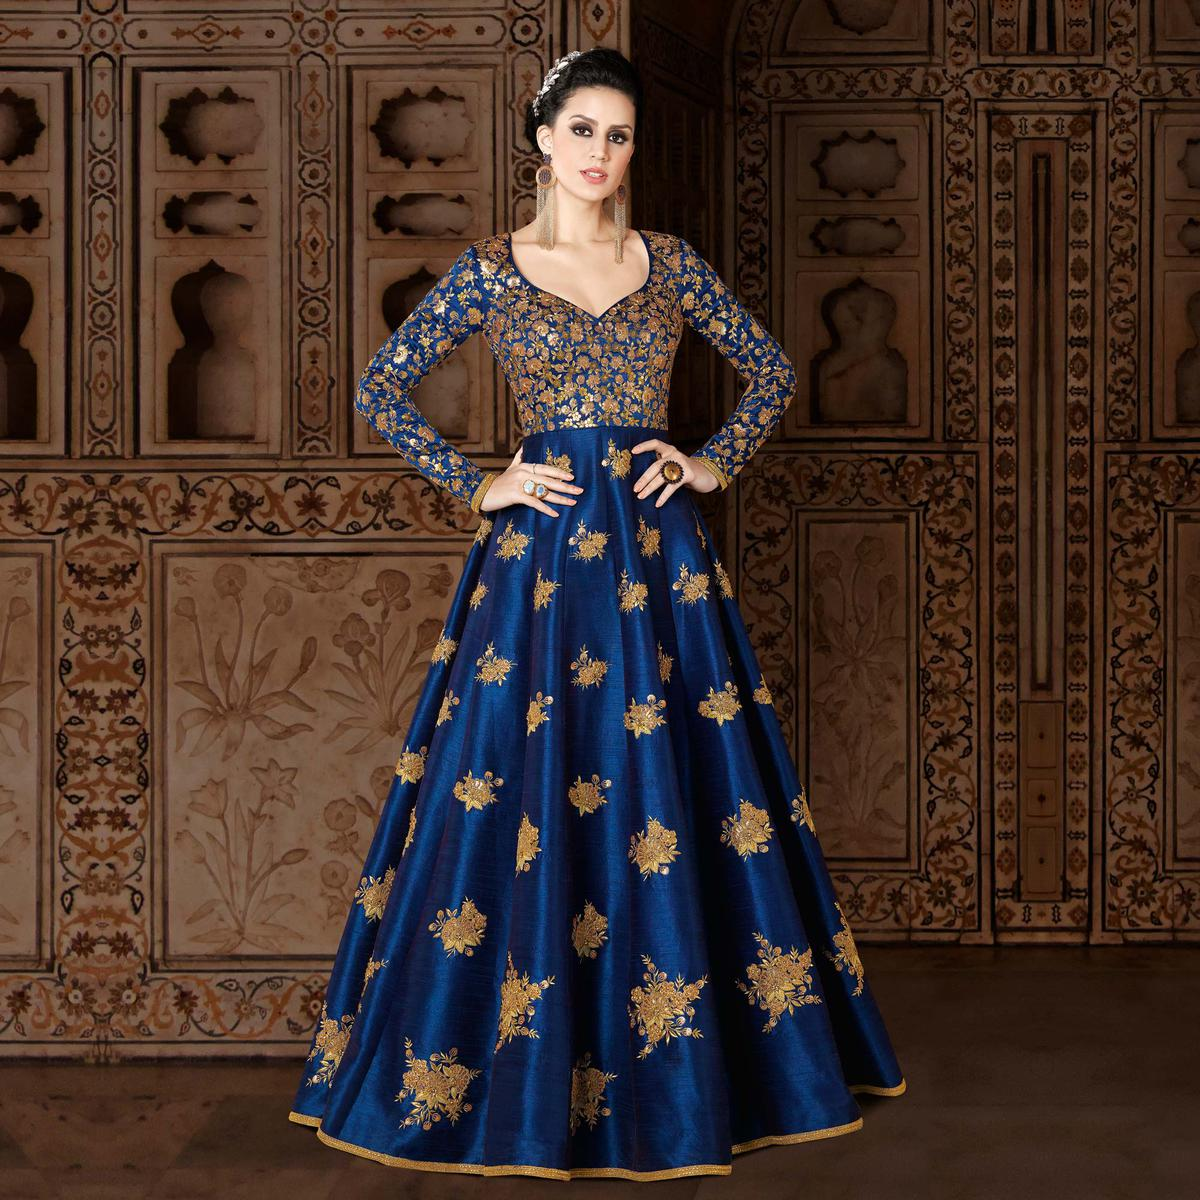 Mesmerising Royal Blue Designer Embroidered Floor Length Mulberry Silk Suit